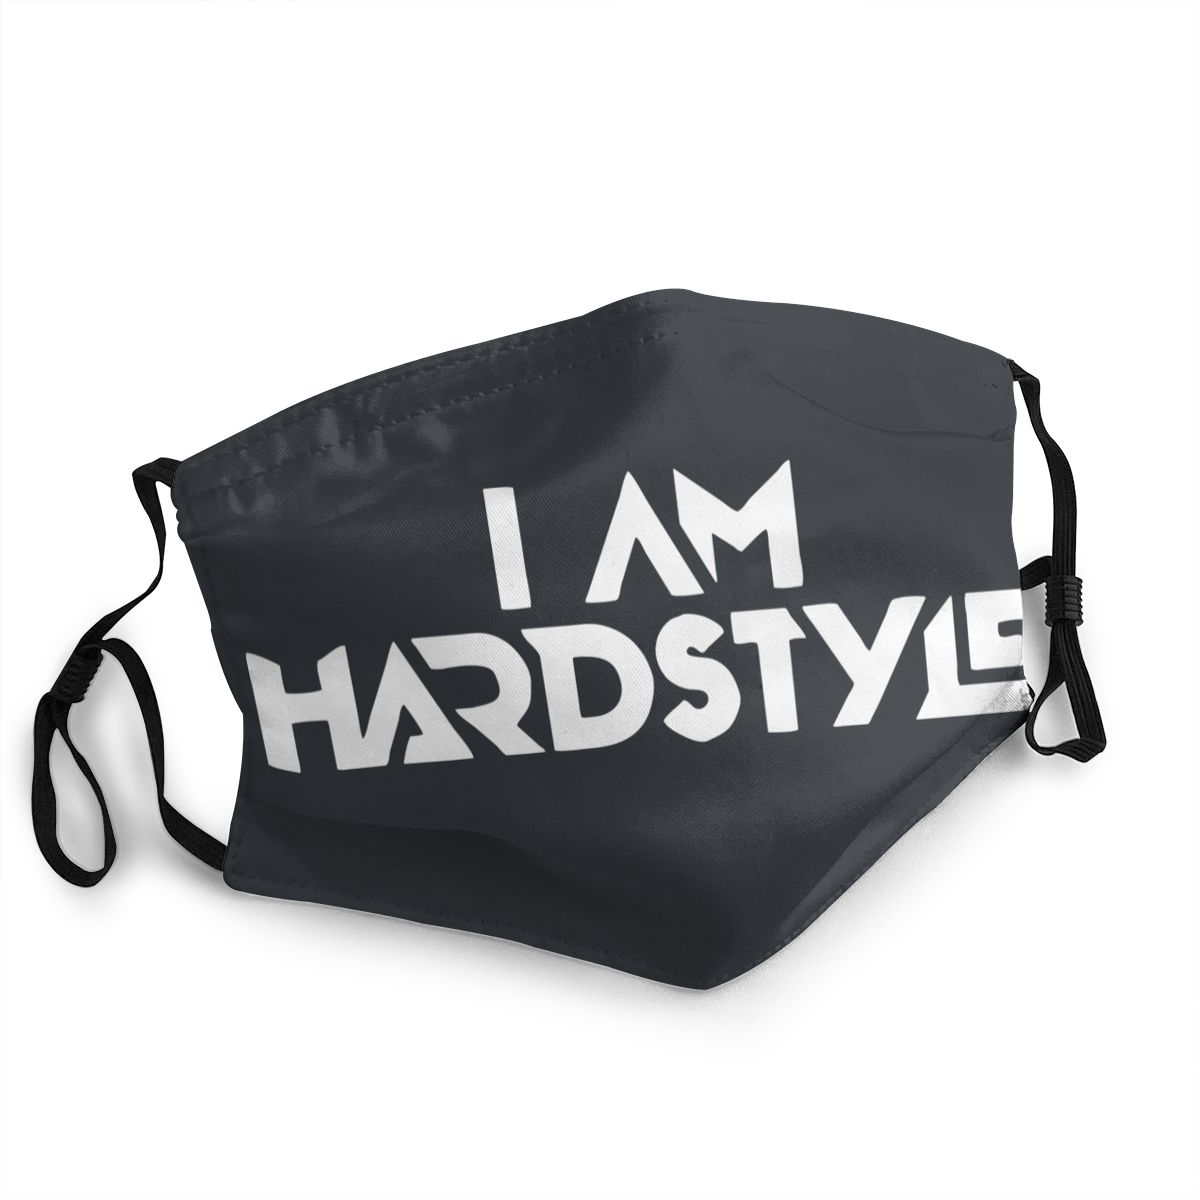 I Am Hardstyle Non-Disposable Mouth Face Mask Music Defqon Hardcore Anti Haze Dustproof Protection Mask Respirator Muffle